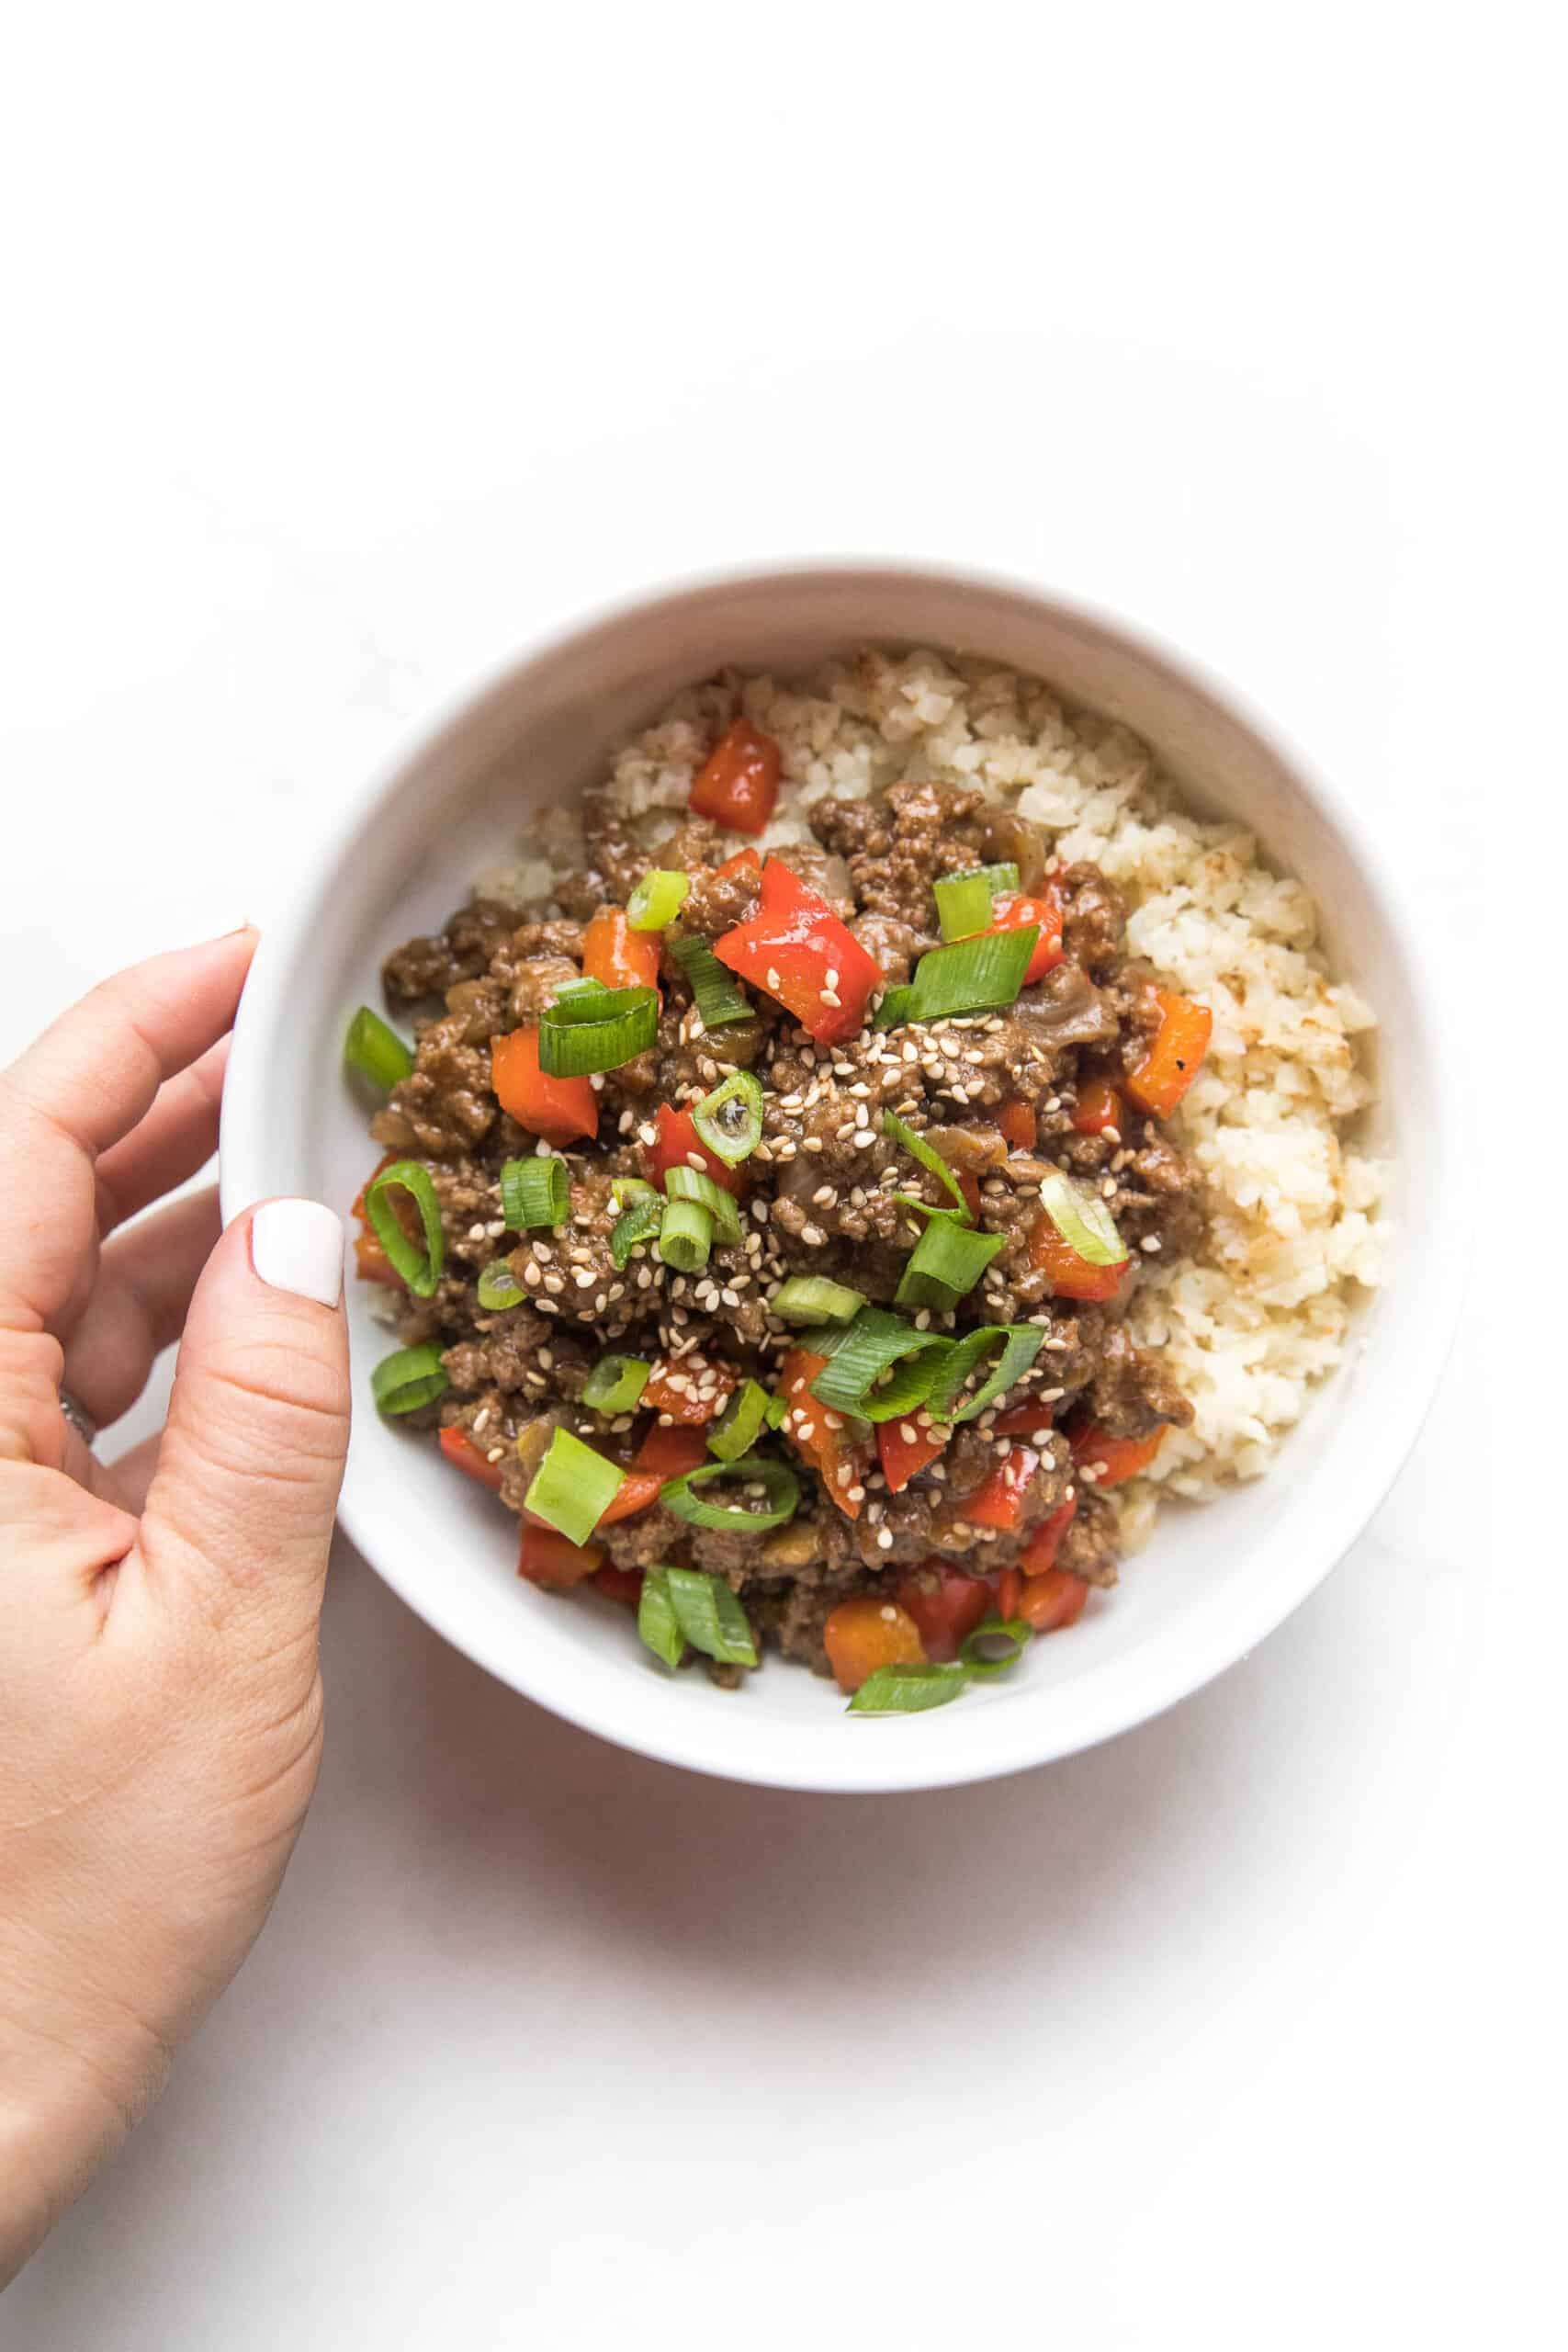 hand holding ground asian beef + bell peppers topped with green onions over cauliflower rice in a white bowl